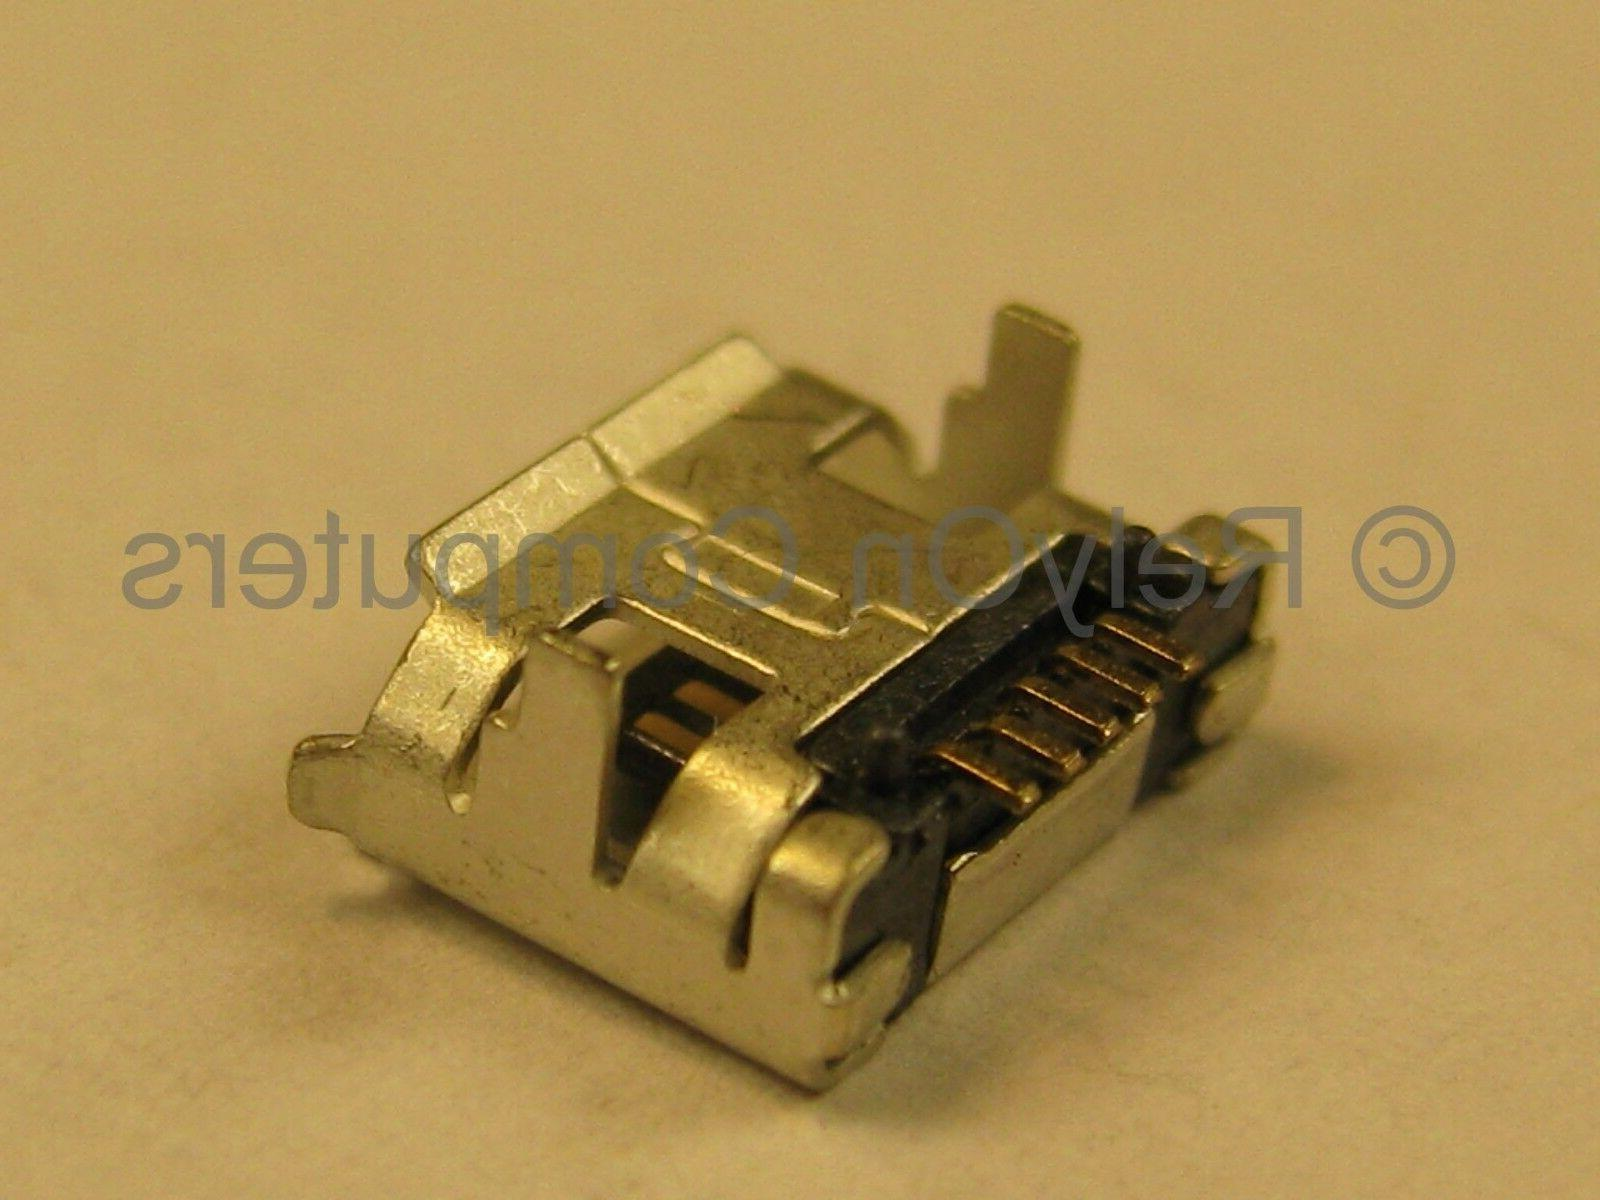 10x Lot of USB Charging Port for Bluetooth